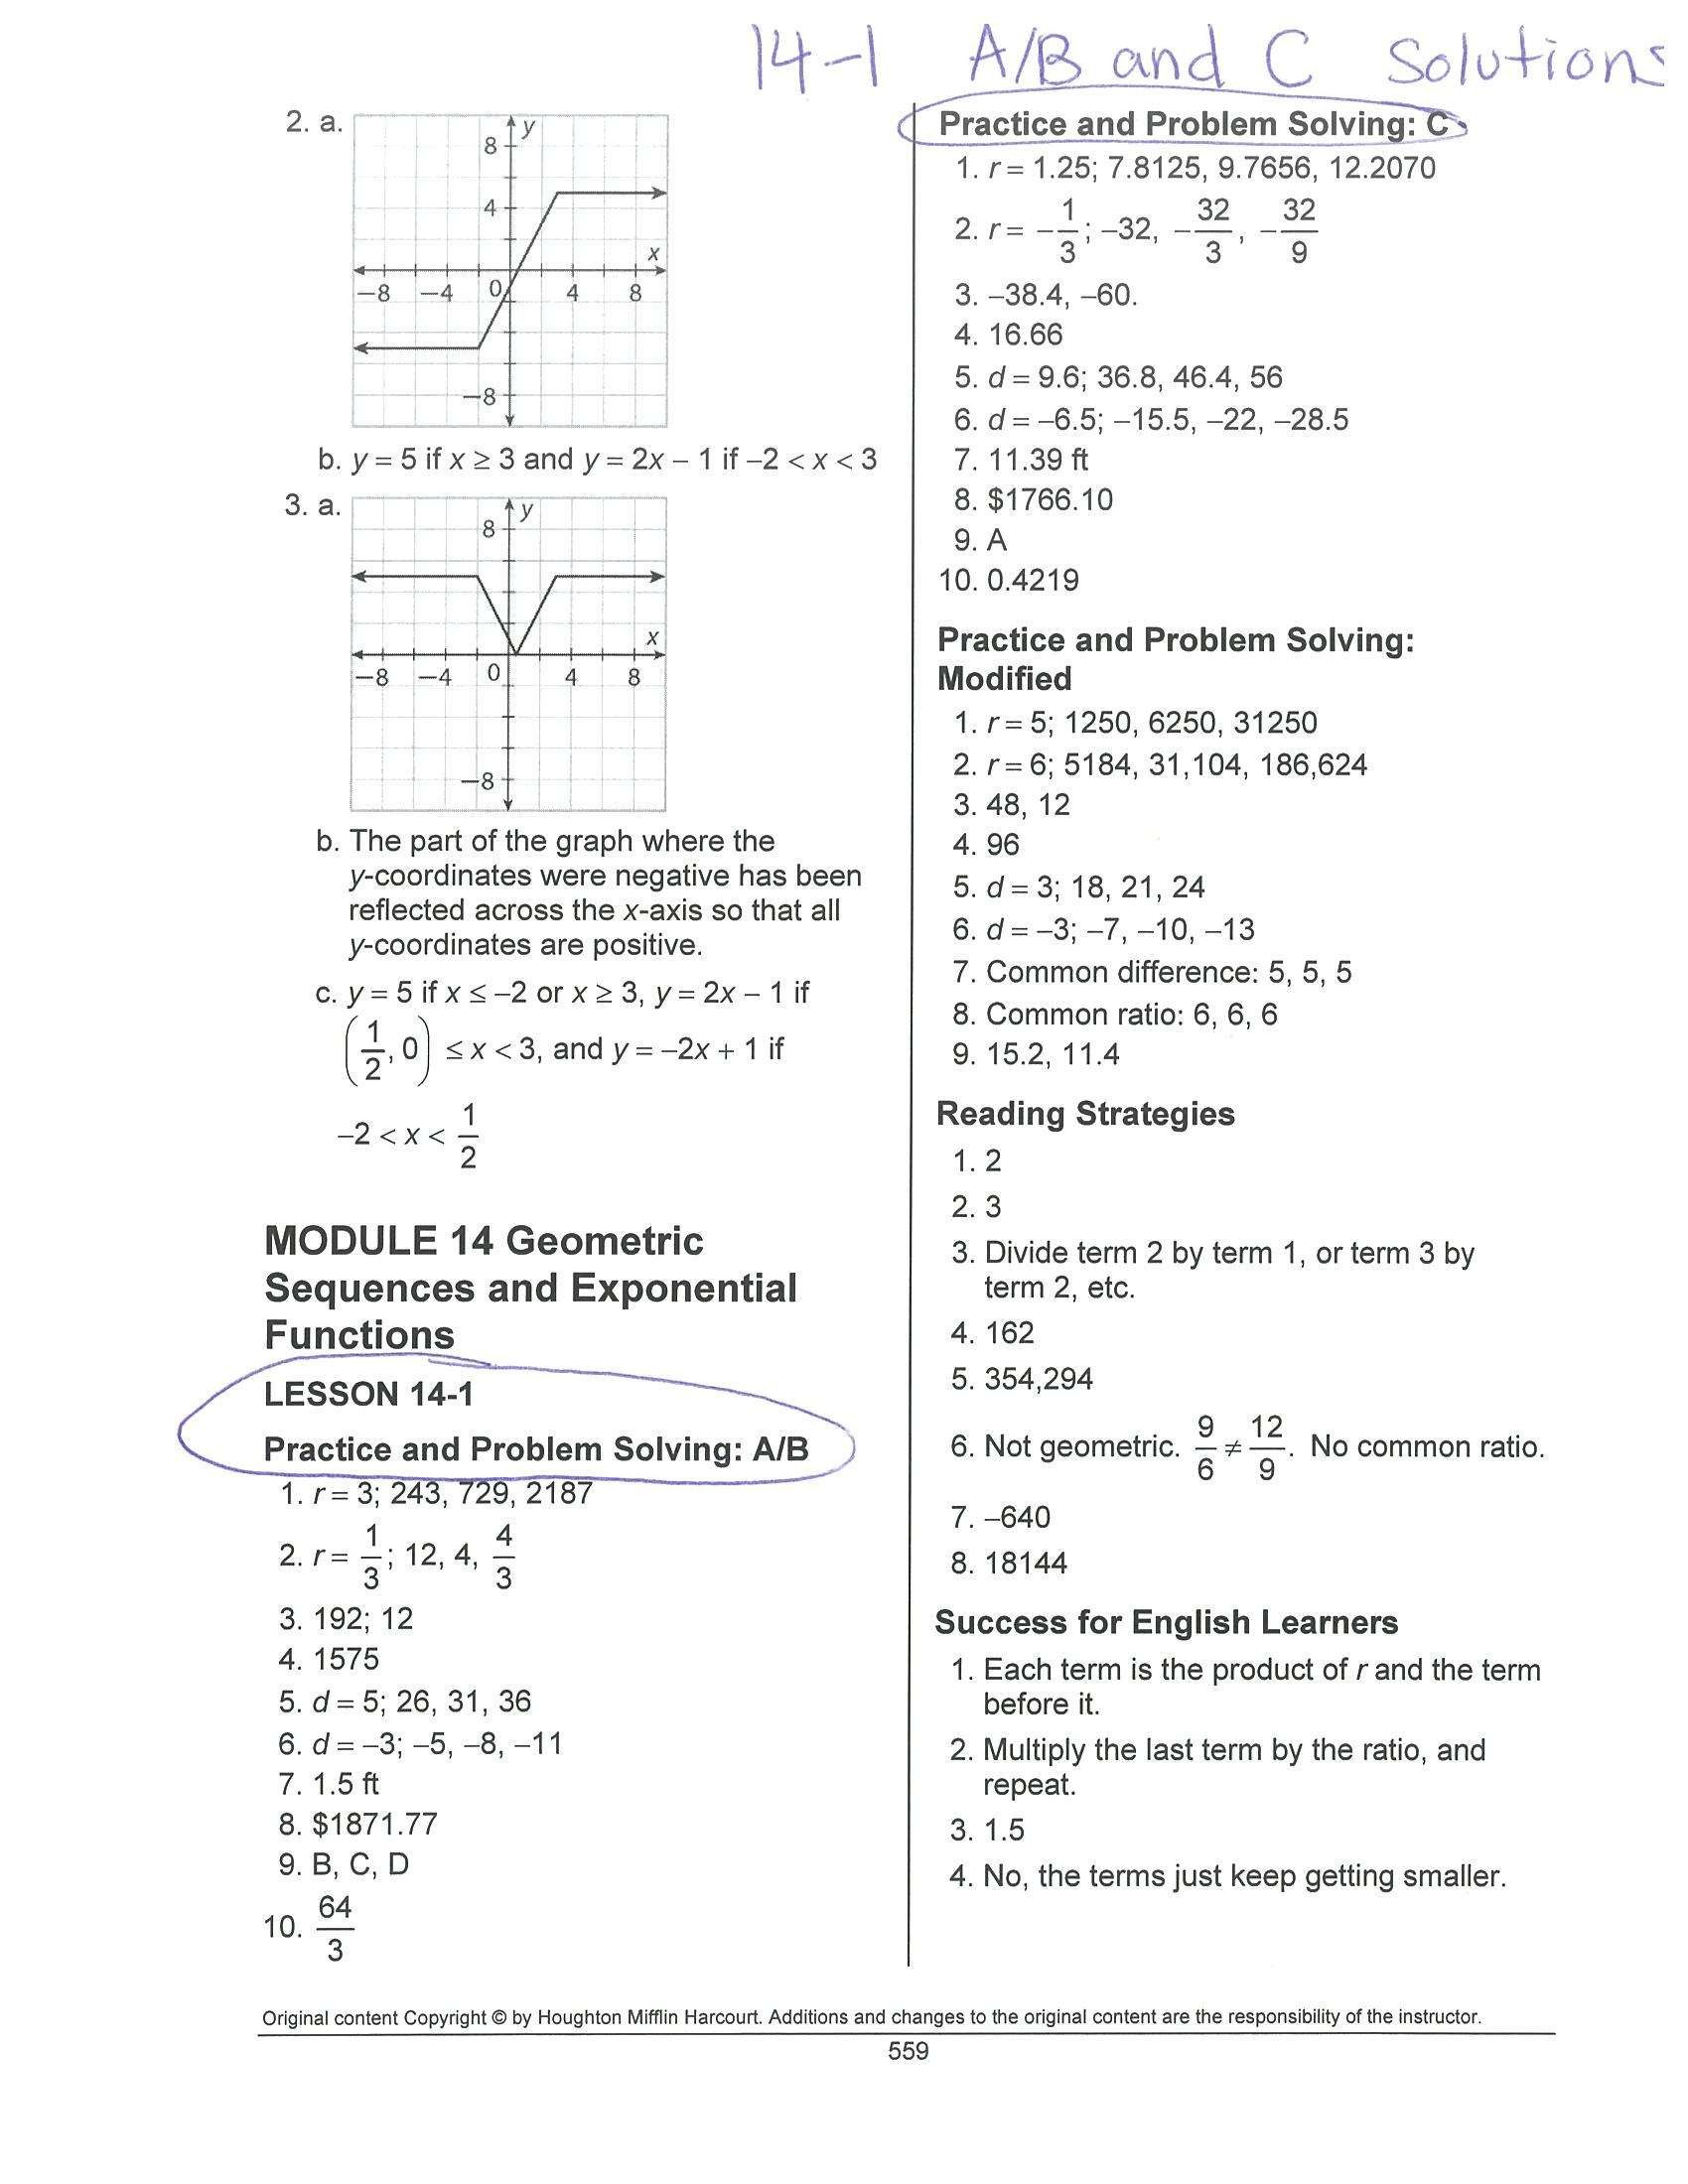 Math Models Worksheet 4 1 Relations And Functions Answers